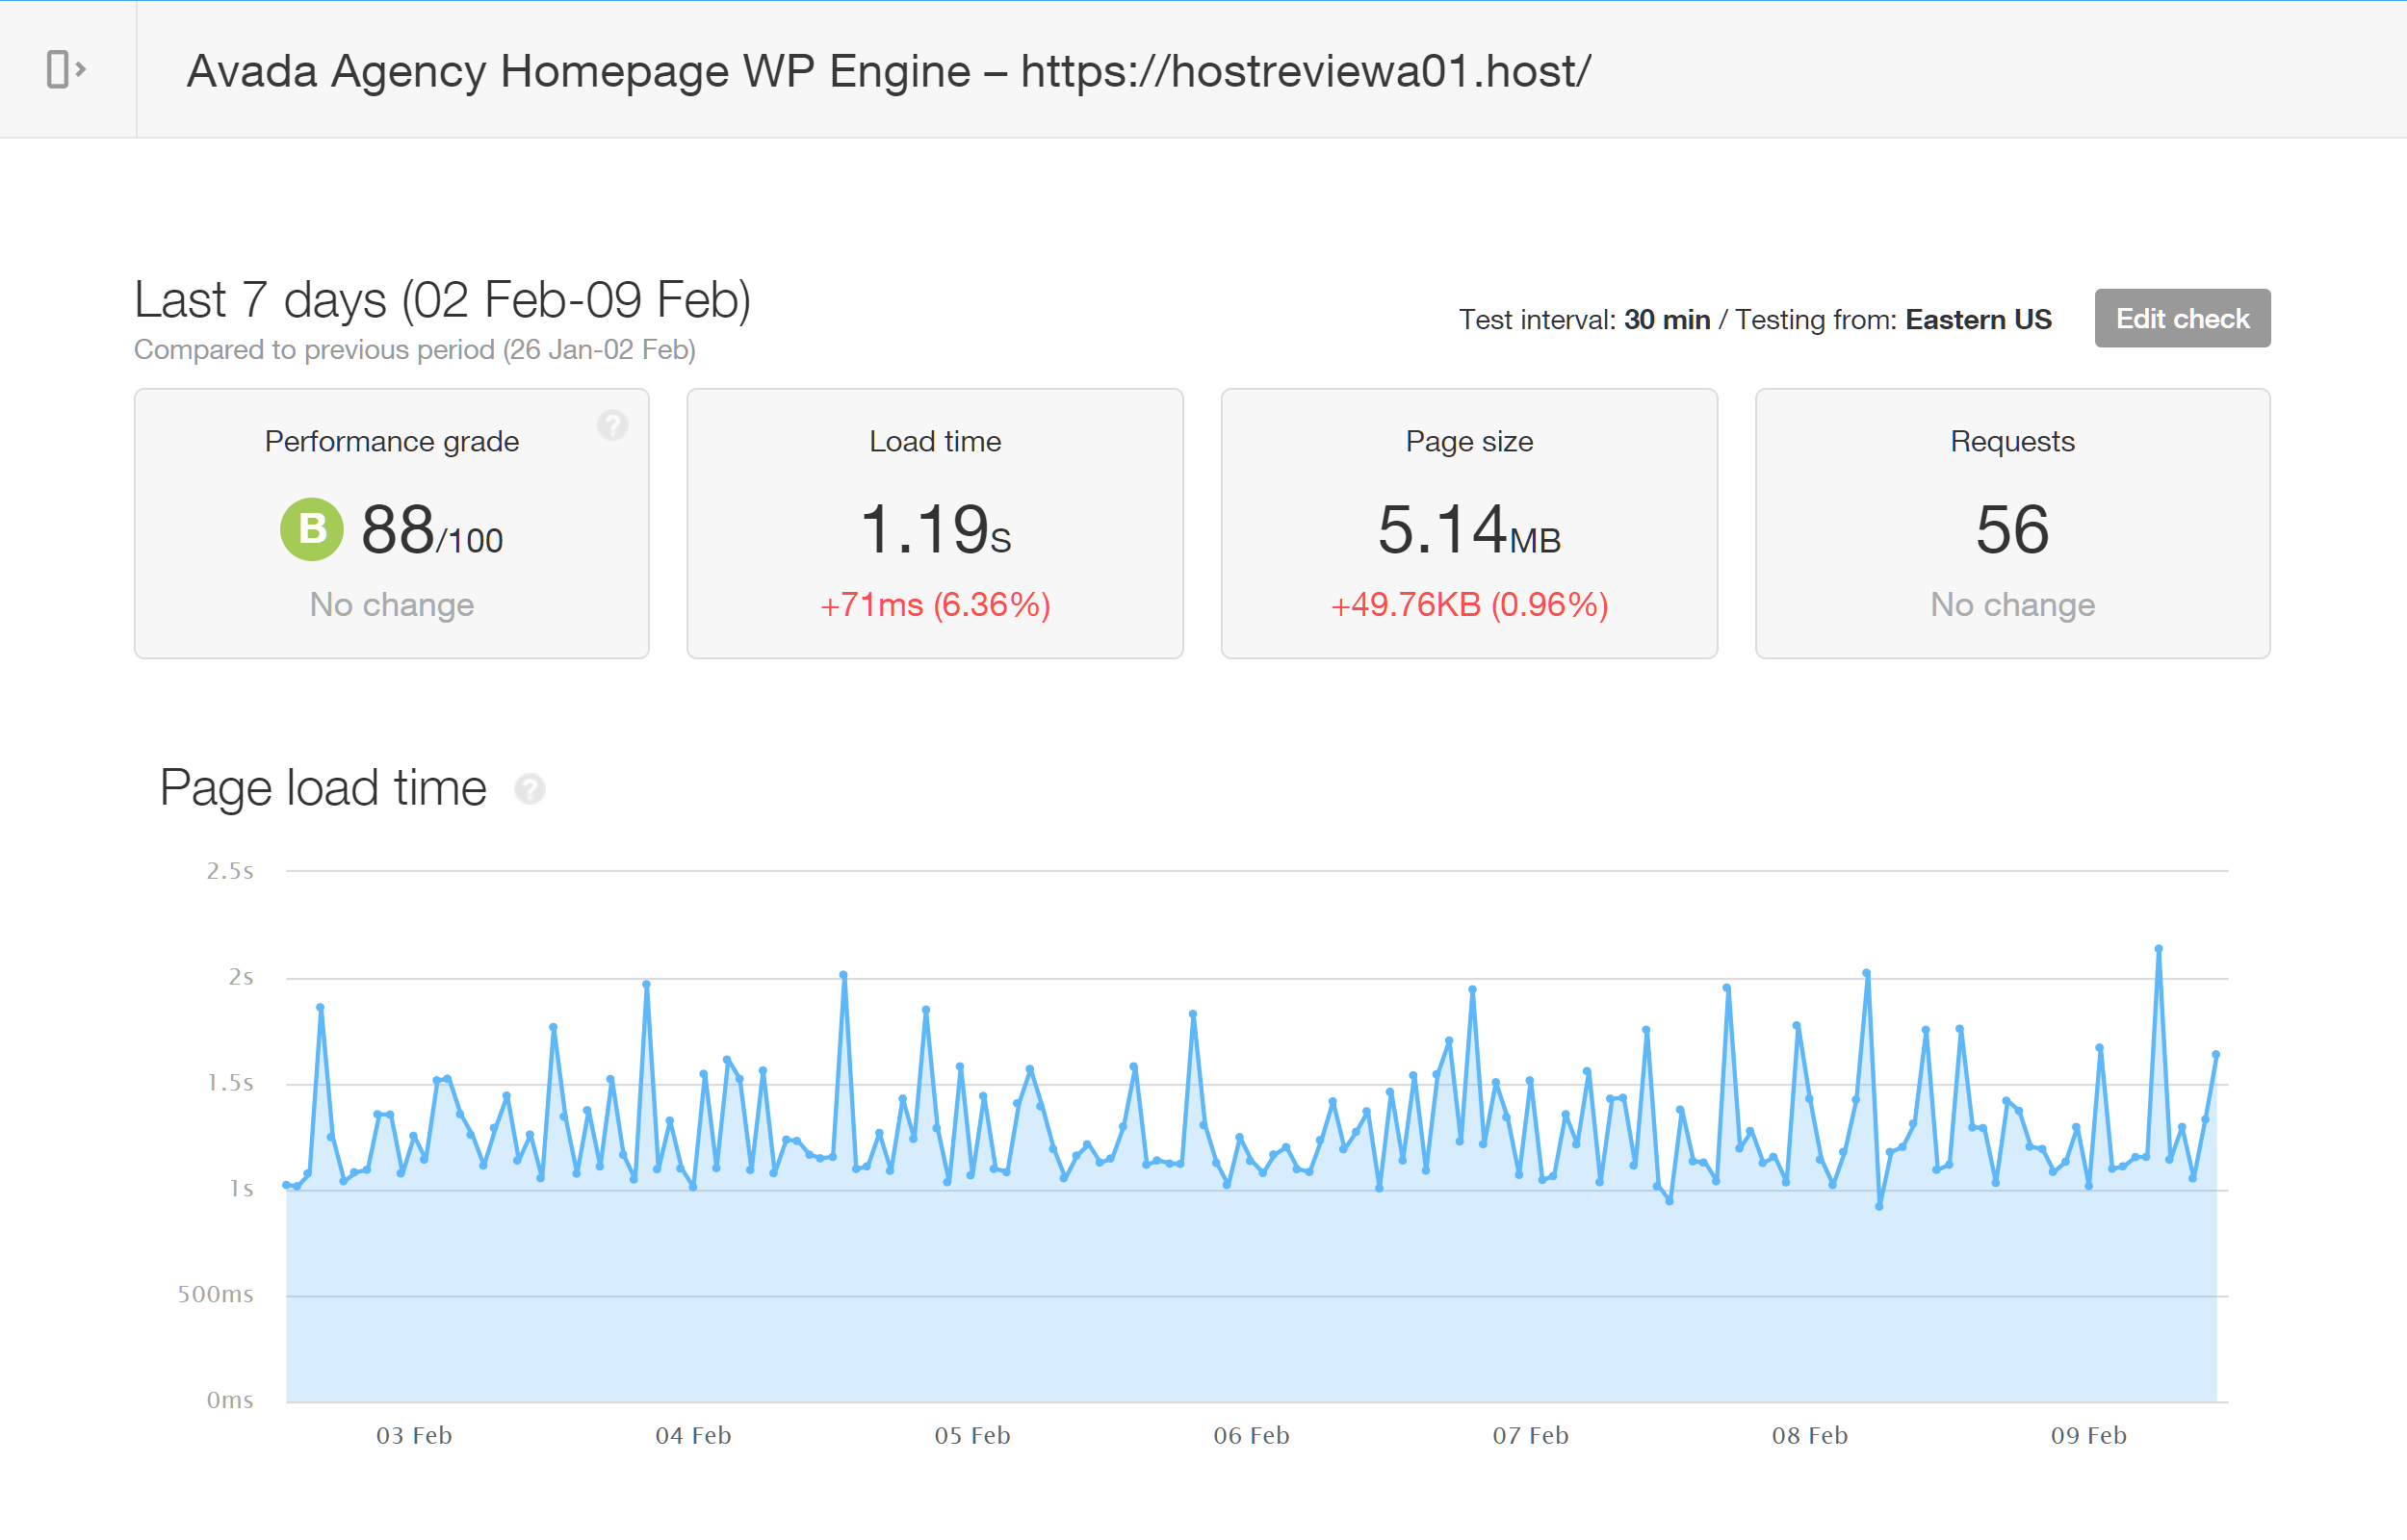 Avada Homepage Test Results for WP Engine